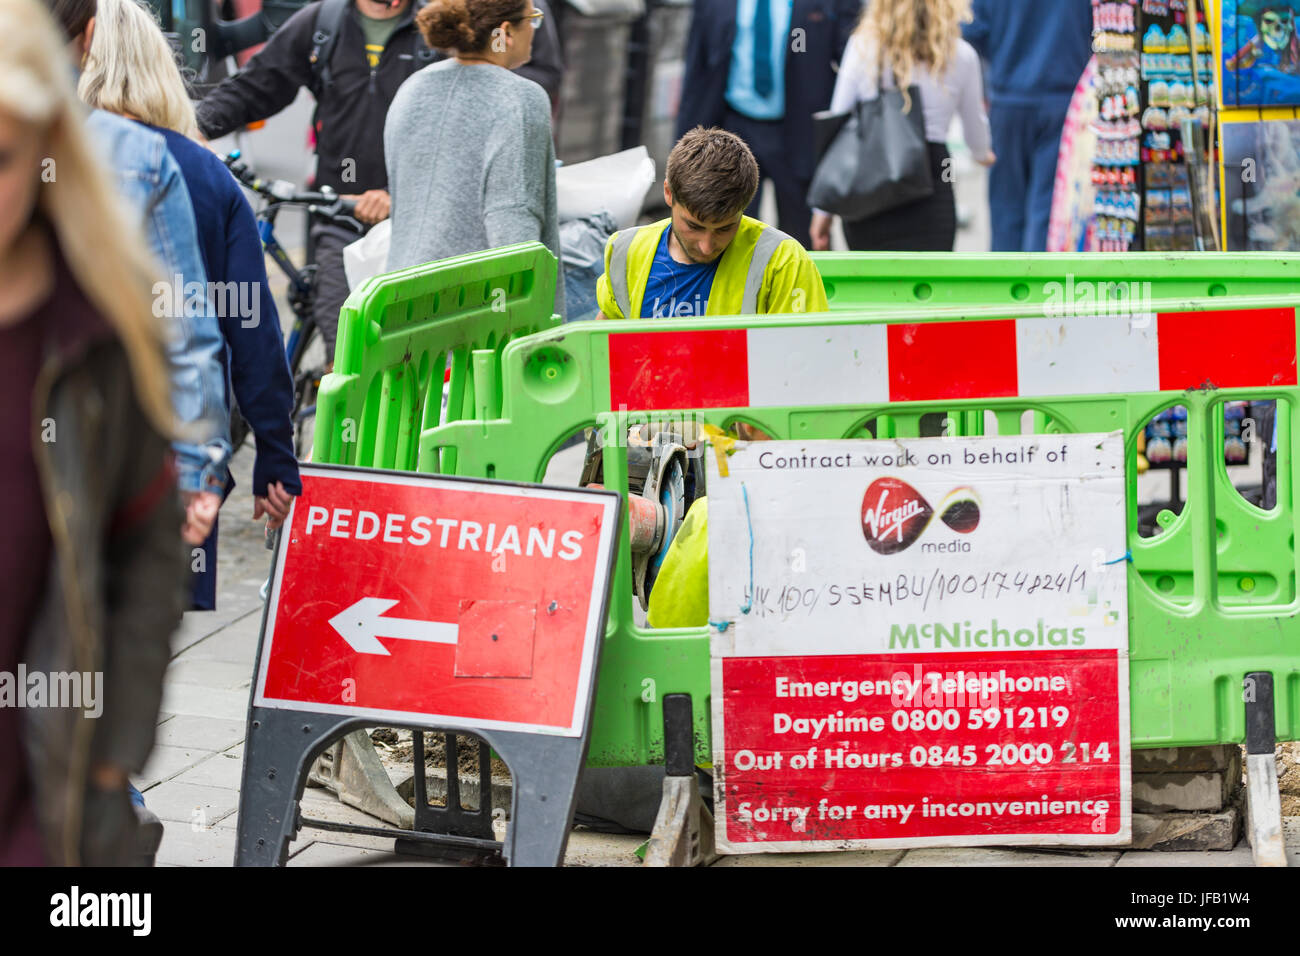 Pavement works. Workers on a pavement in the UK with barriers directing pedestrians around it. Stock Photo